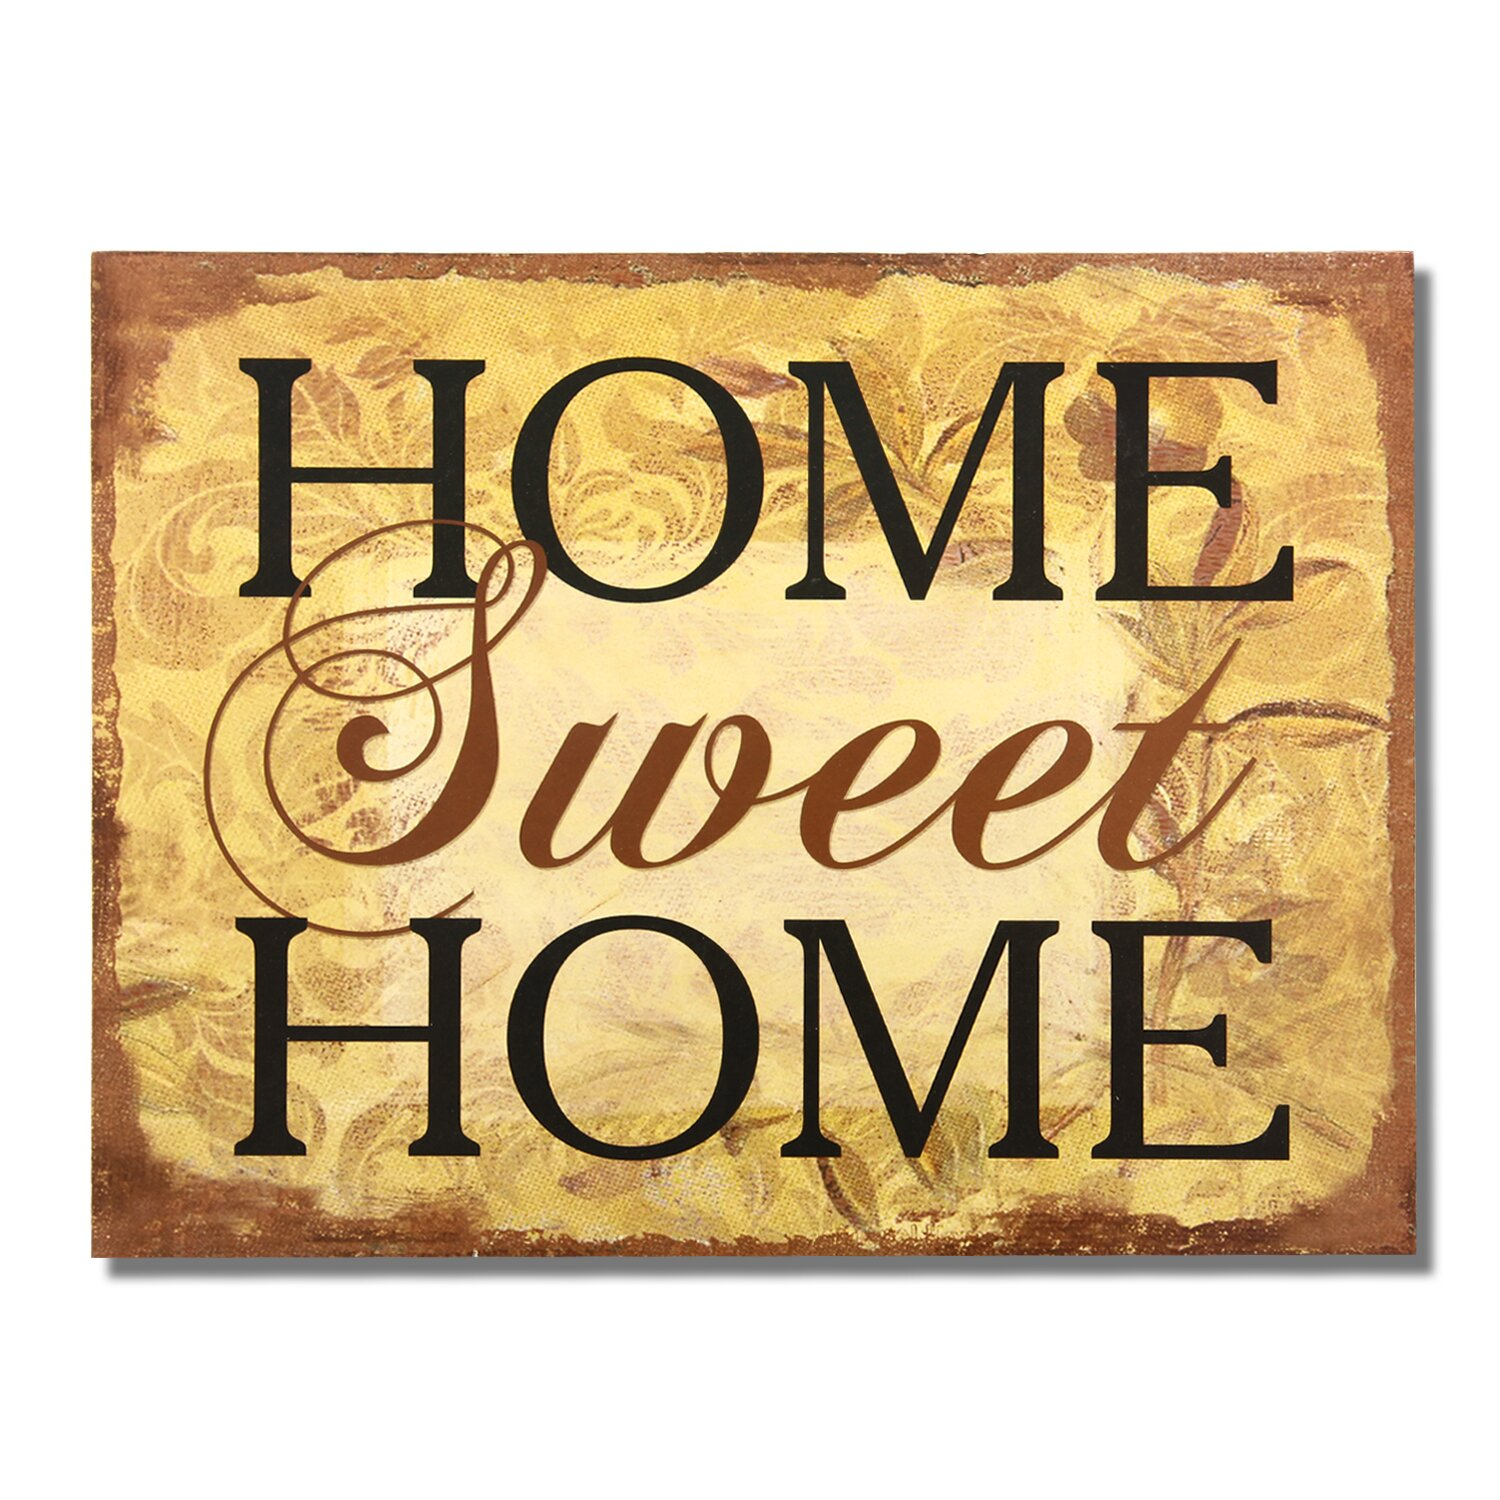 Home sweet home wall decor wayfair Home sweet home wall decor